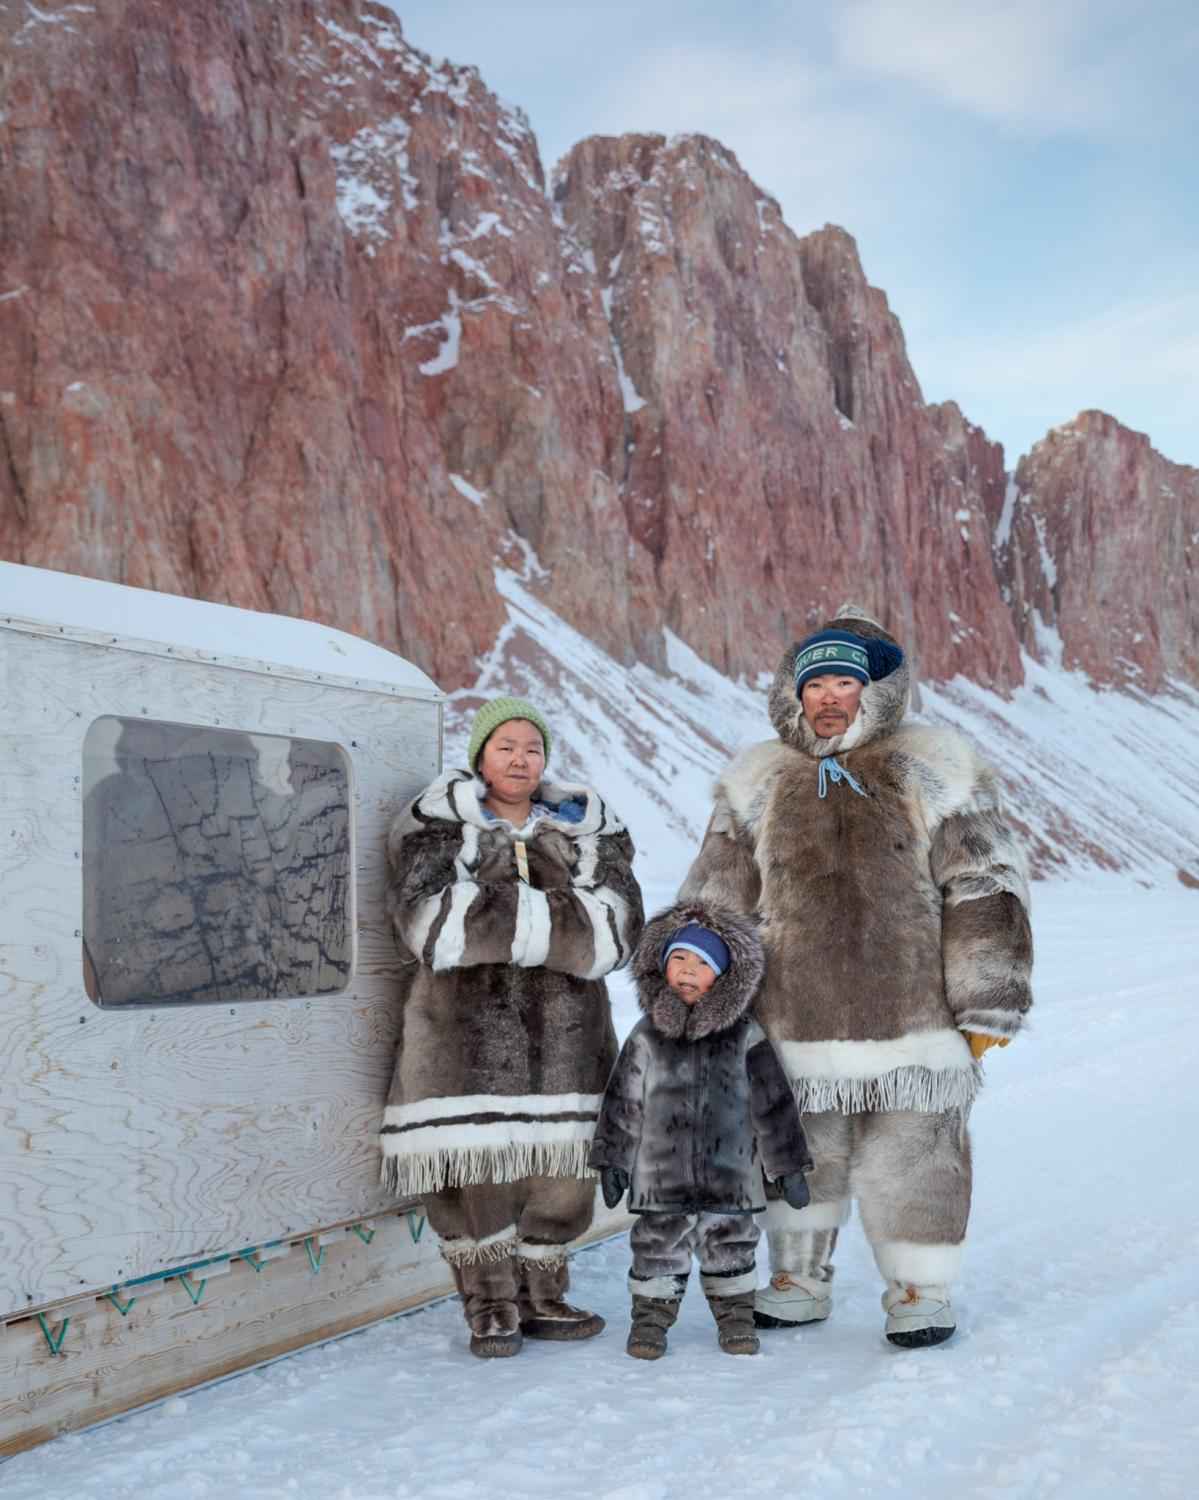 Winter clothing made from caribou skin keeps Valerie and Michael Qaunaq warm, while their three-year-old son, Joshua, stays bundled up in an outfit made from a harp seal.